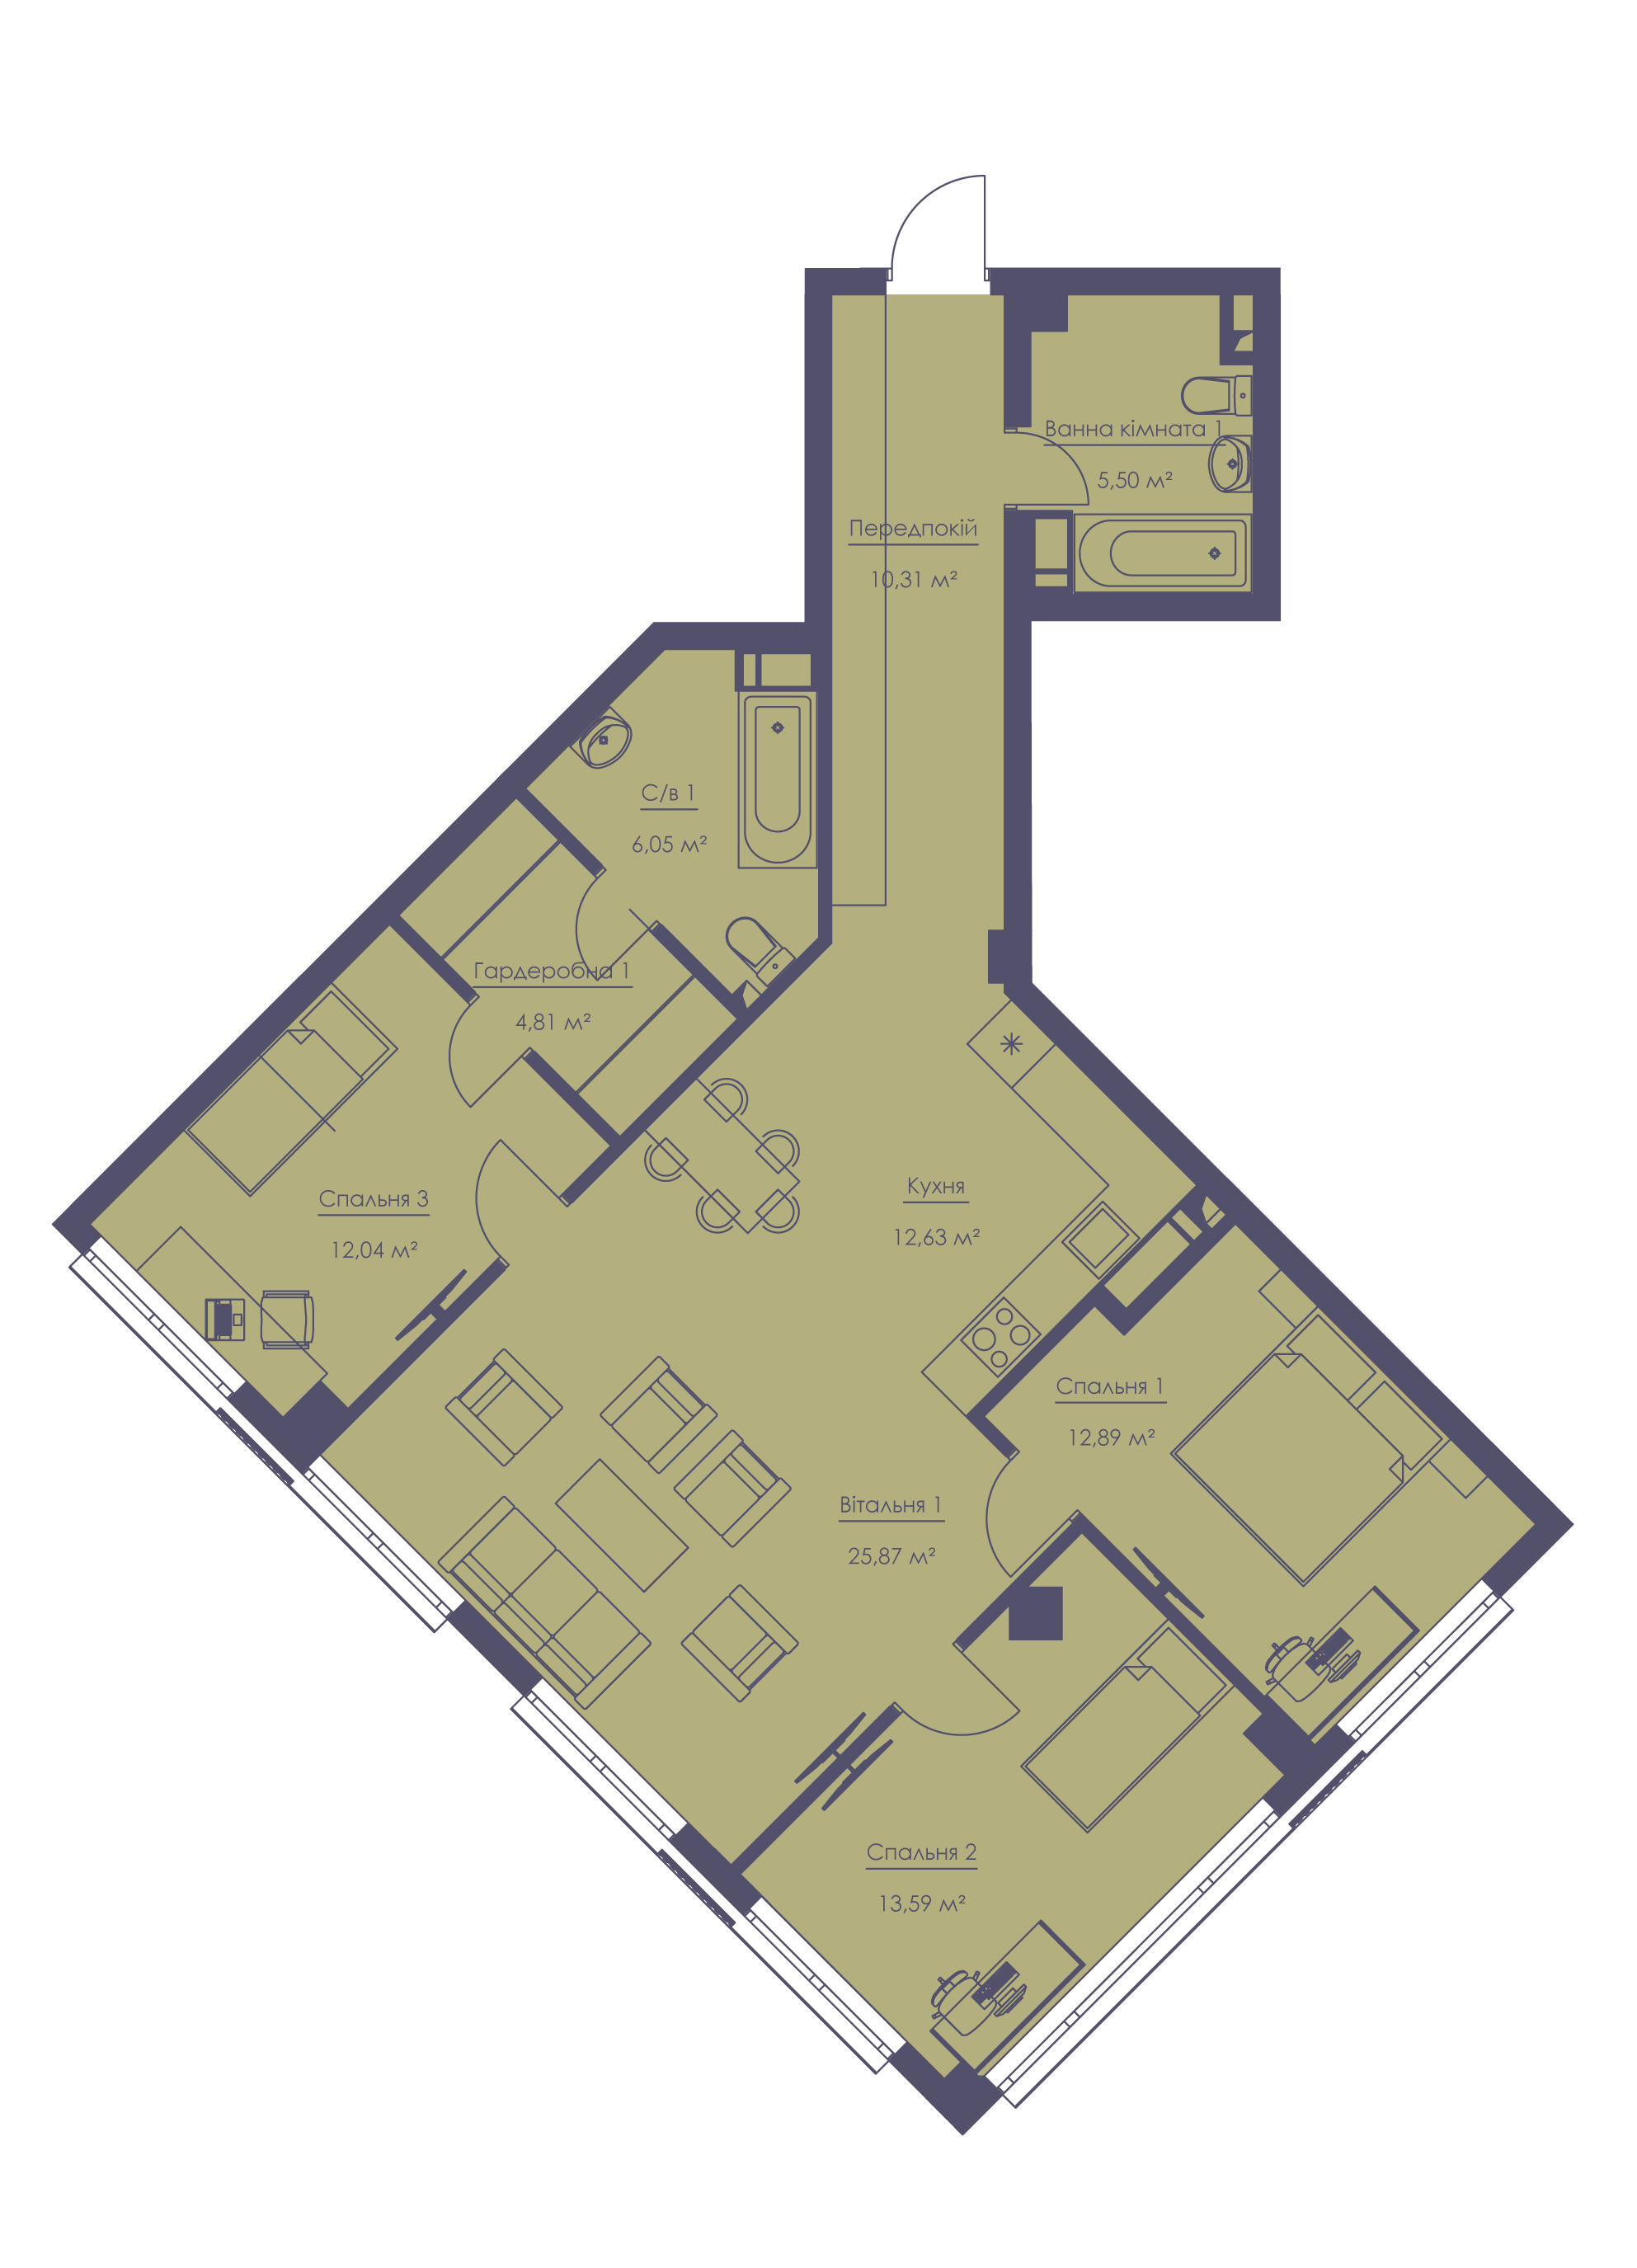 Apartment layout KV_93_4a_1_1_2-1